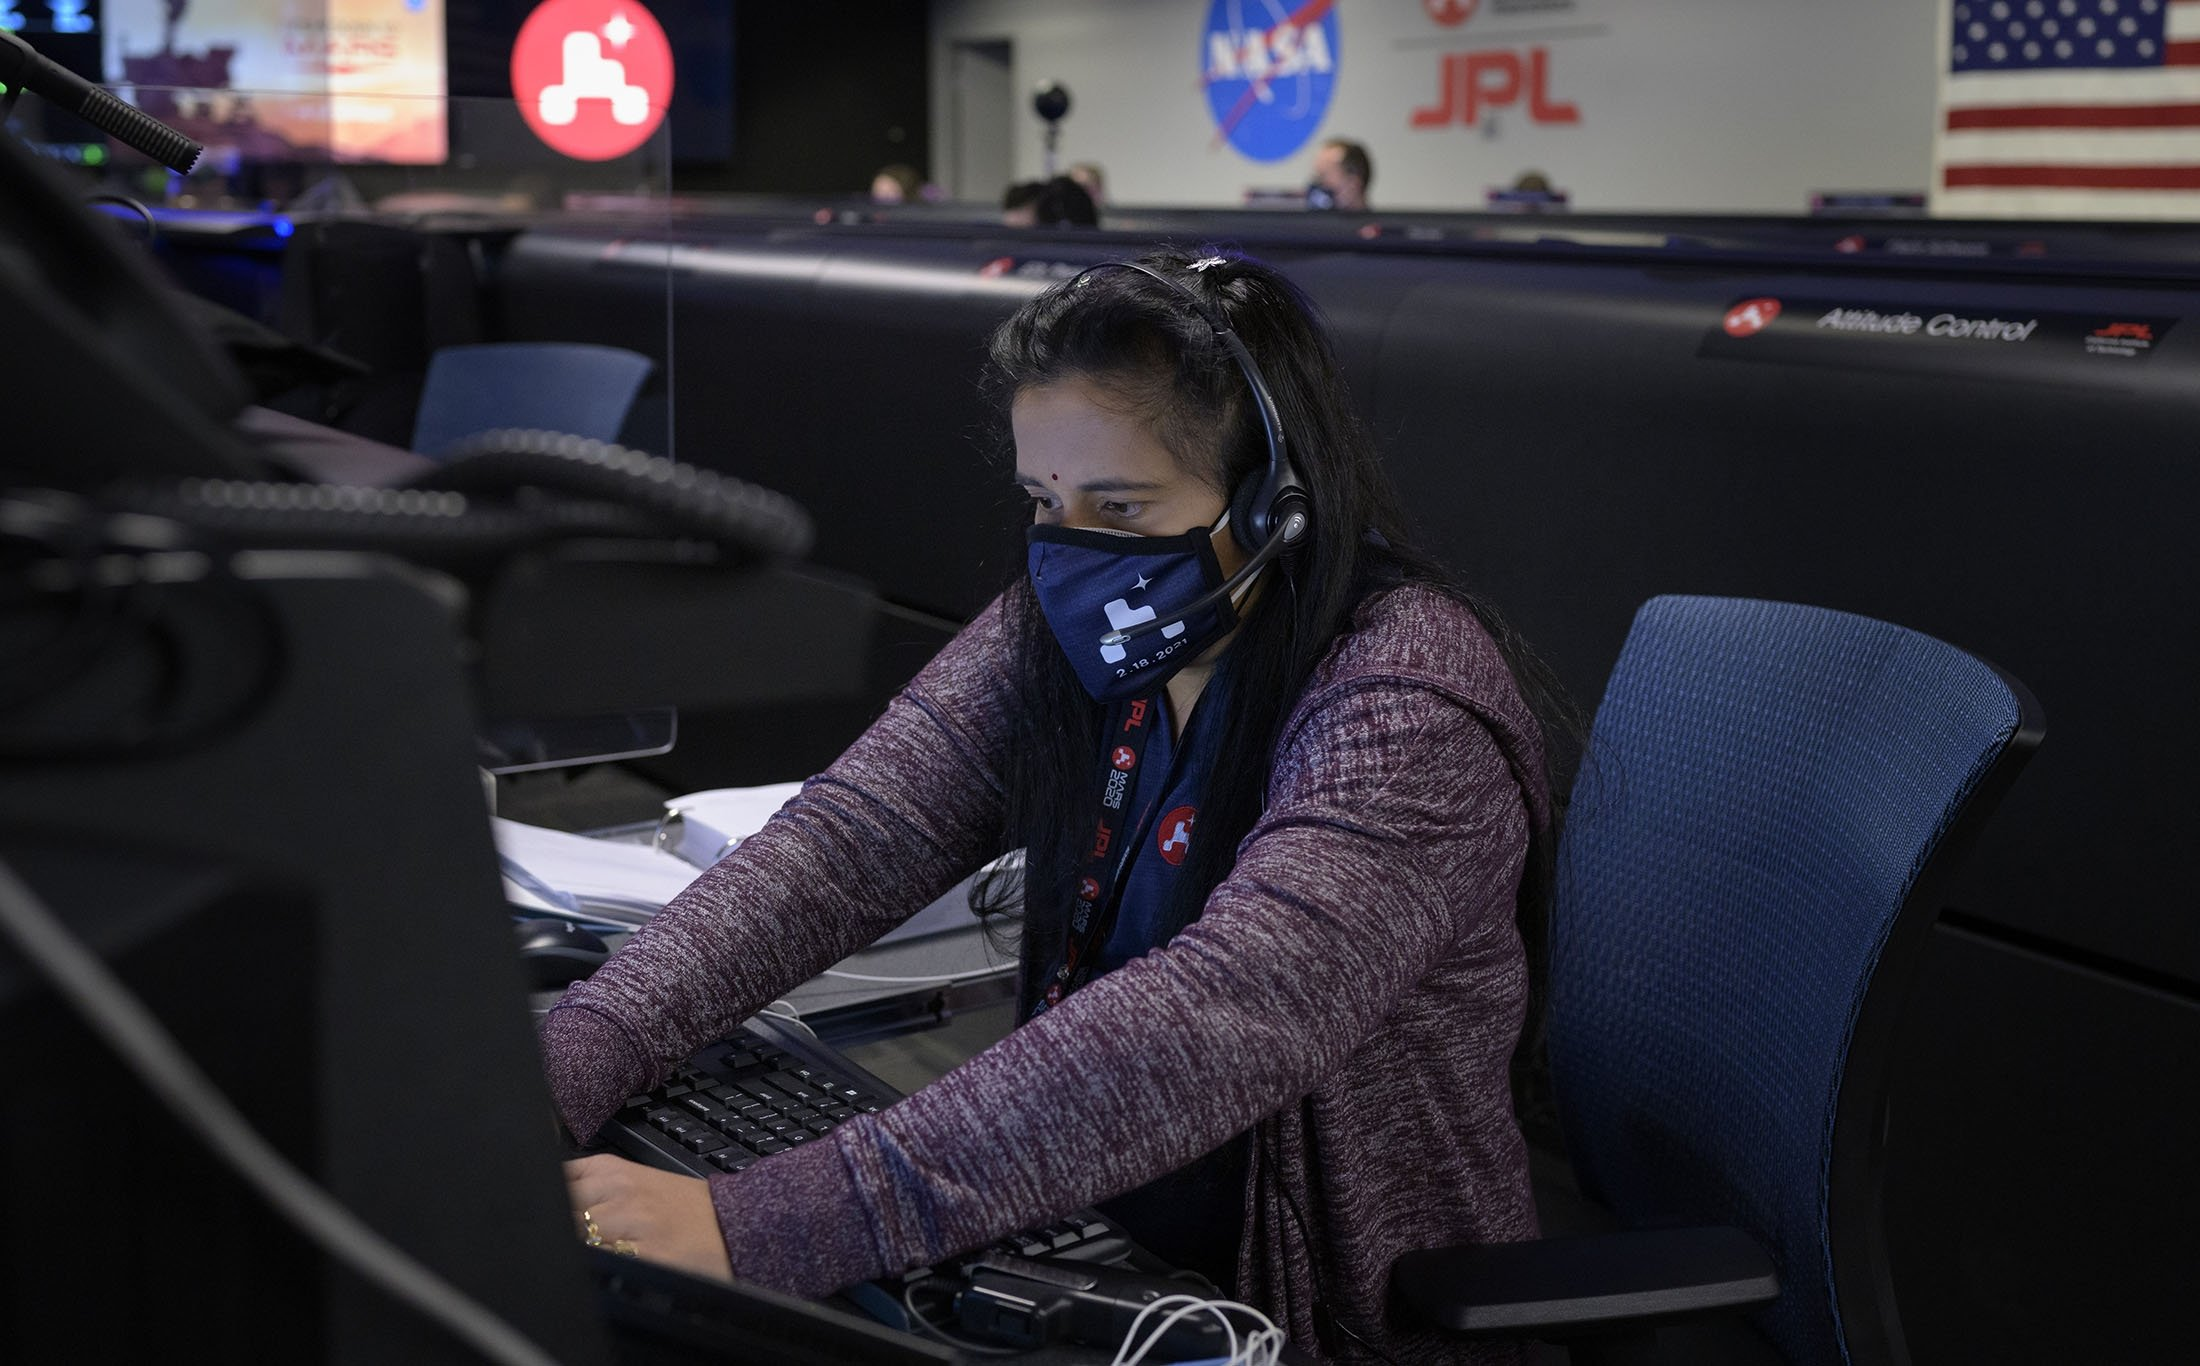 In this handout image provided by NASA, Perseverance Mars rover mission commentator and guidance, navigation, and controls operations Lead Swati Mohan studies data on monitors in mission control, February 18, 2021 at NASA's Jet Propulsion Laboratory in Pasadena, California. (NASA via Getty Images)